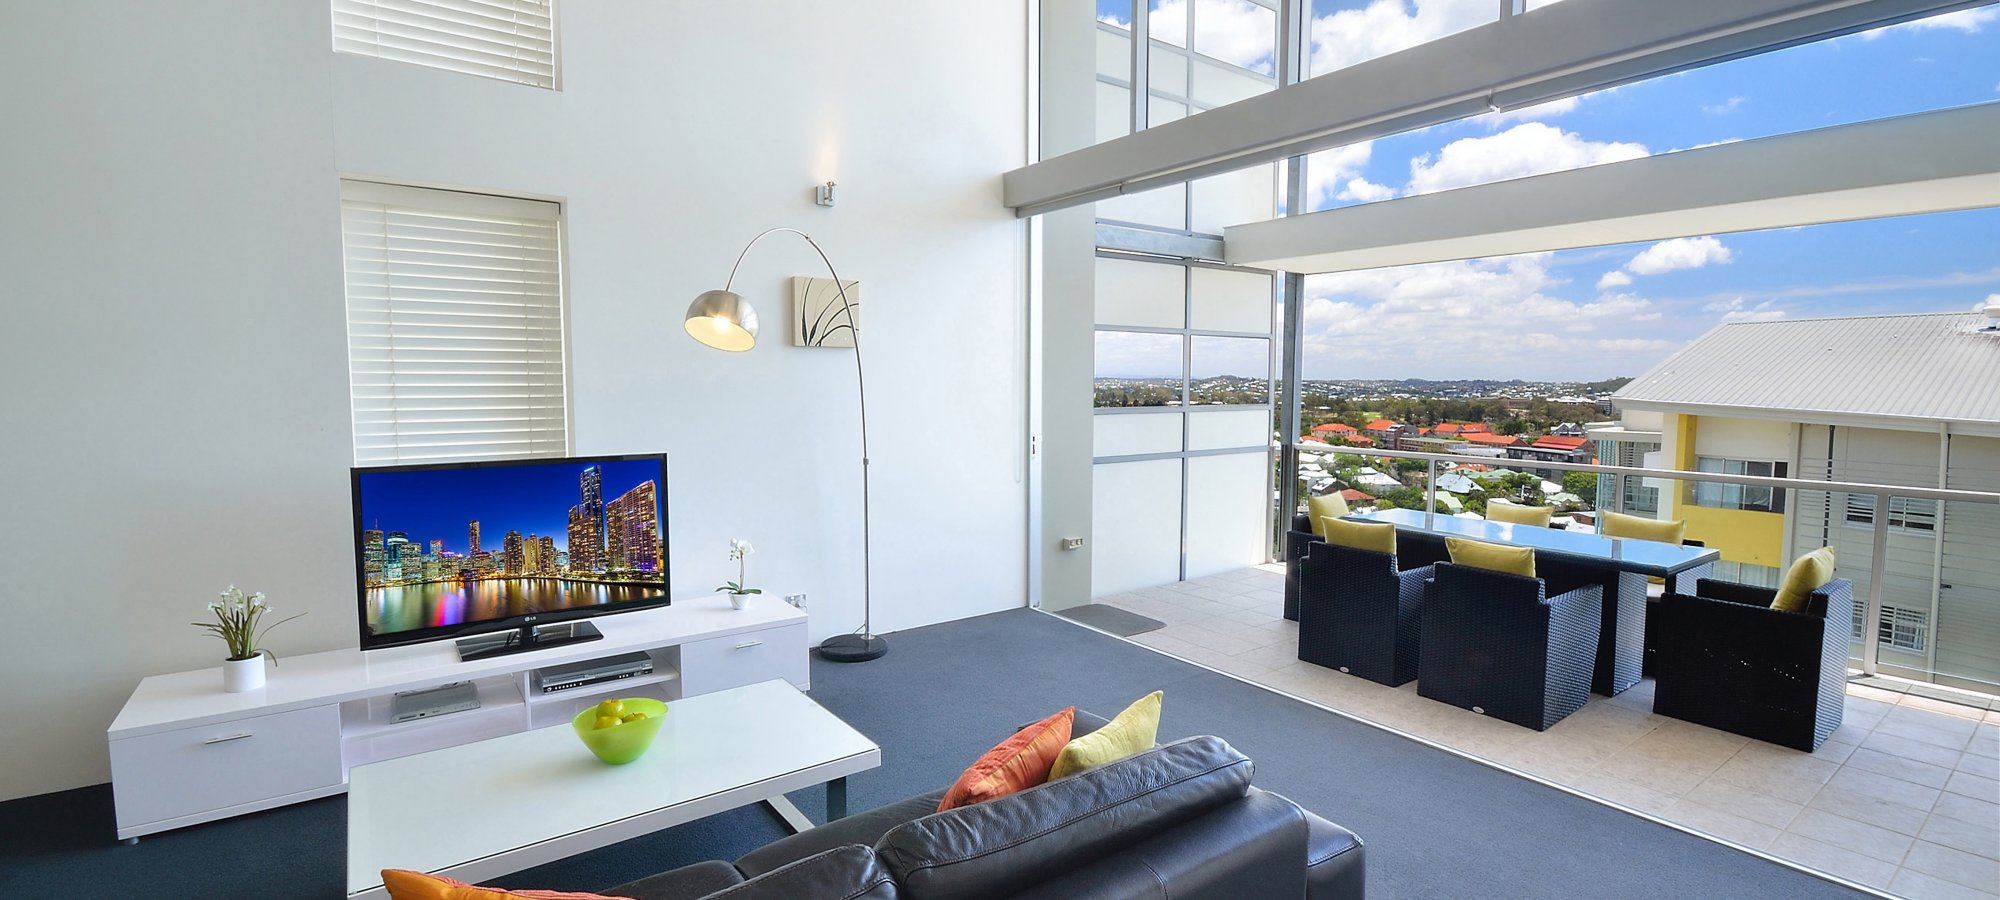 Oxygen Apartments 3 Bed Penthouse Loungeroom And View